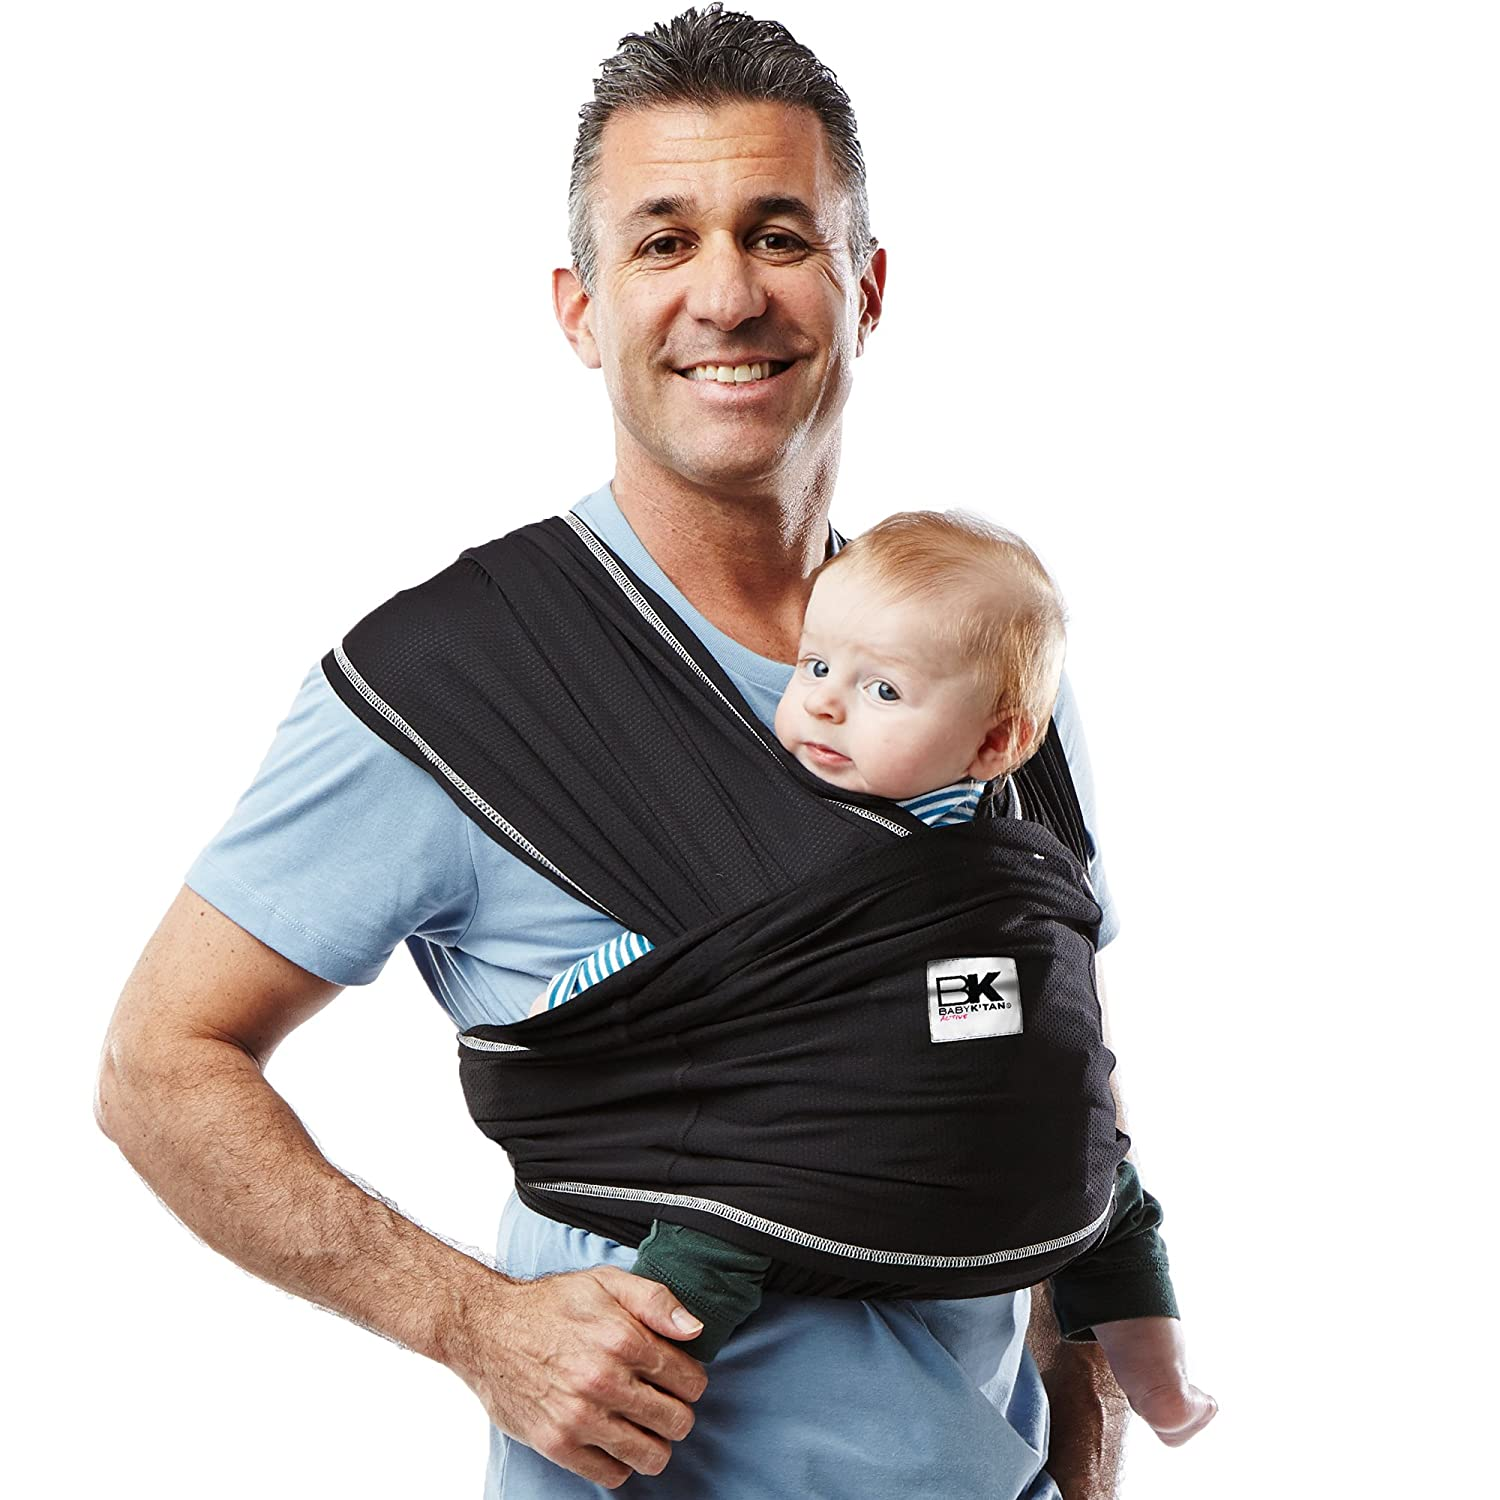 Baby K'tan Active Baby Carrier (Large, Black) Baby K' tan BKBC-ACTIVE-BL-L